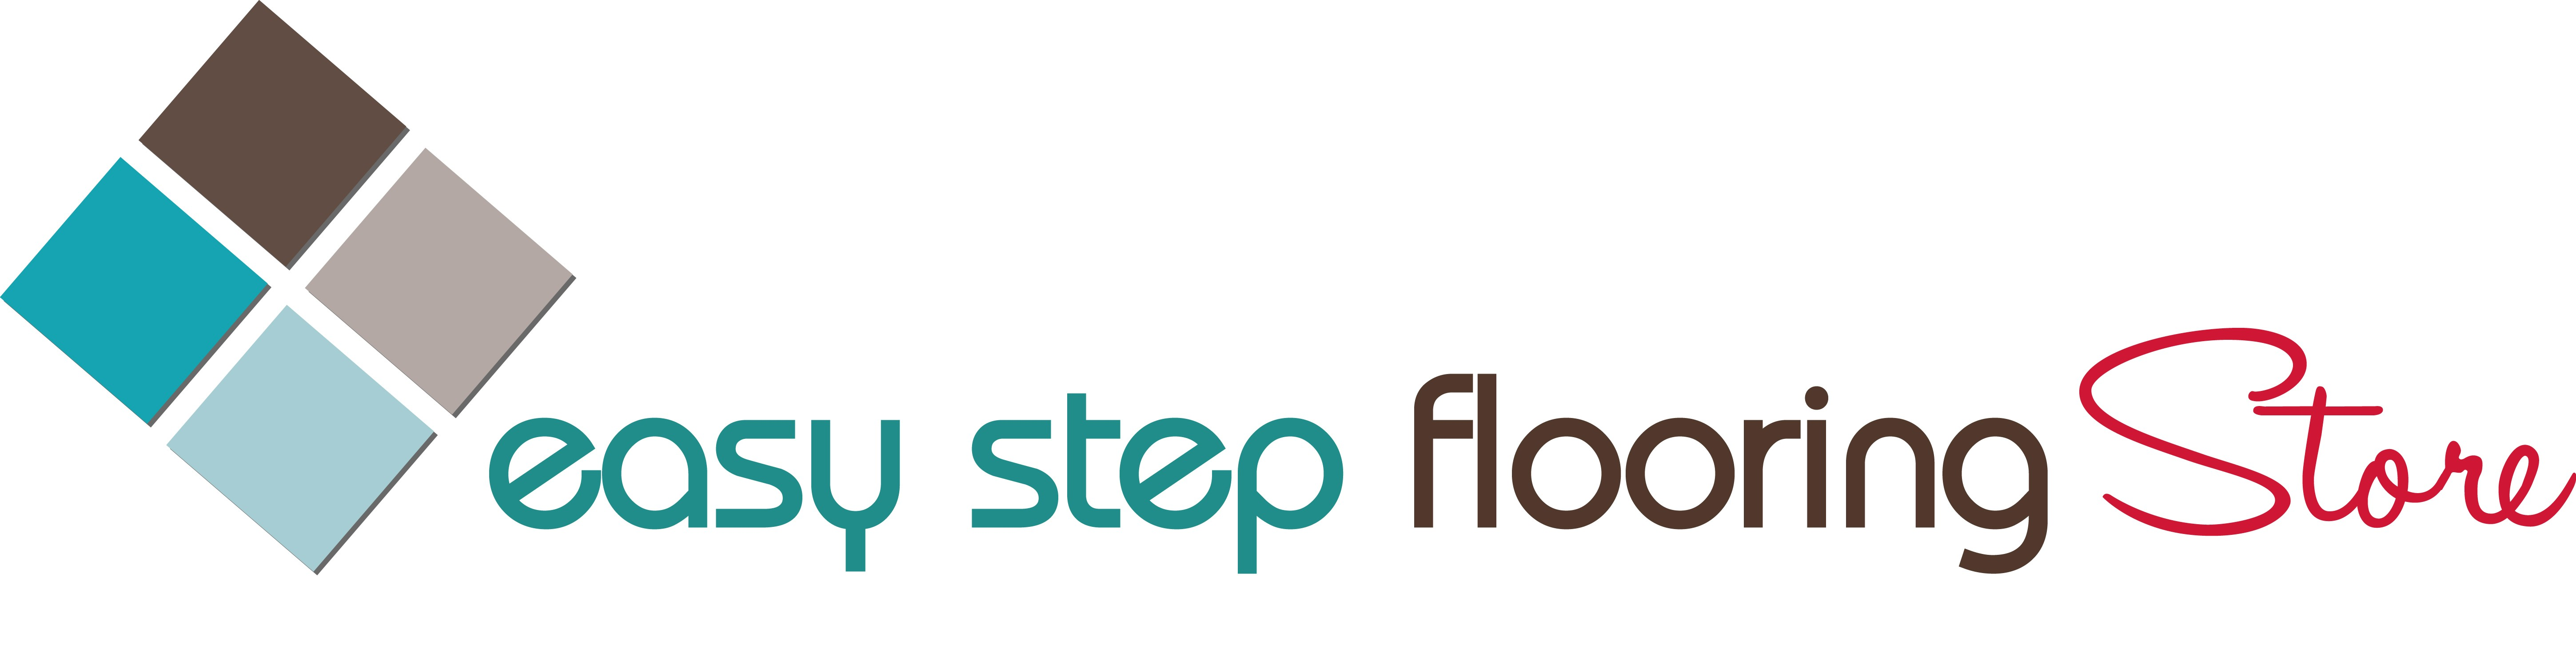 Easy Step Flooring